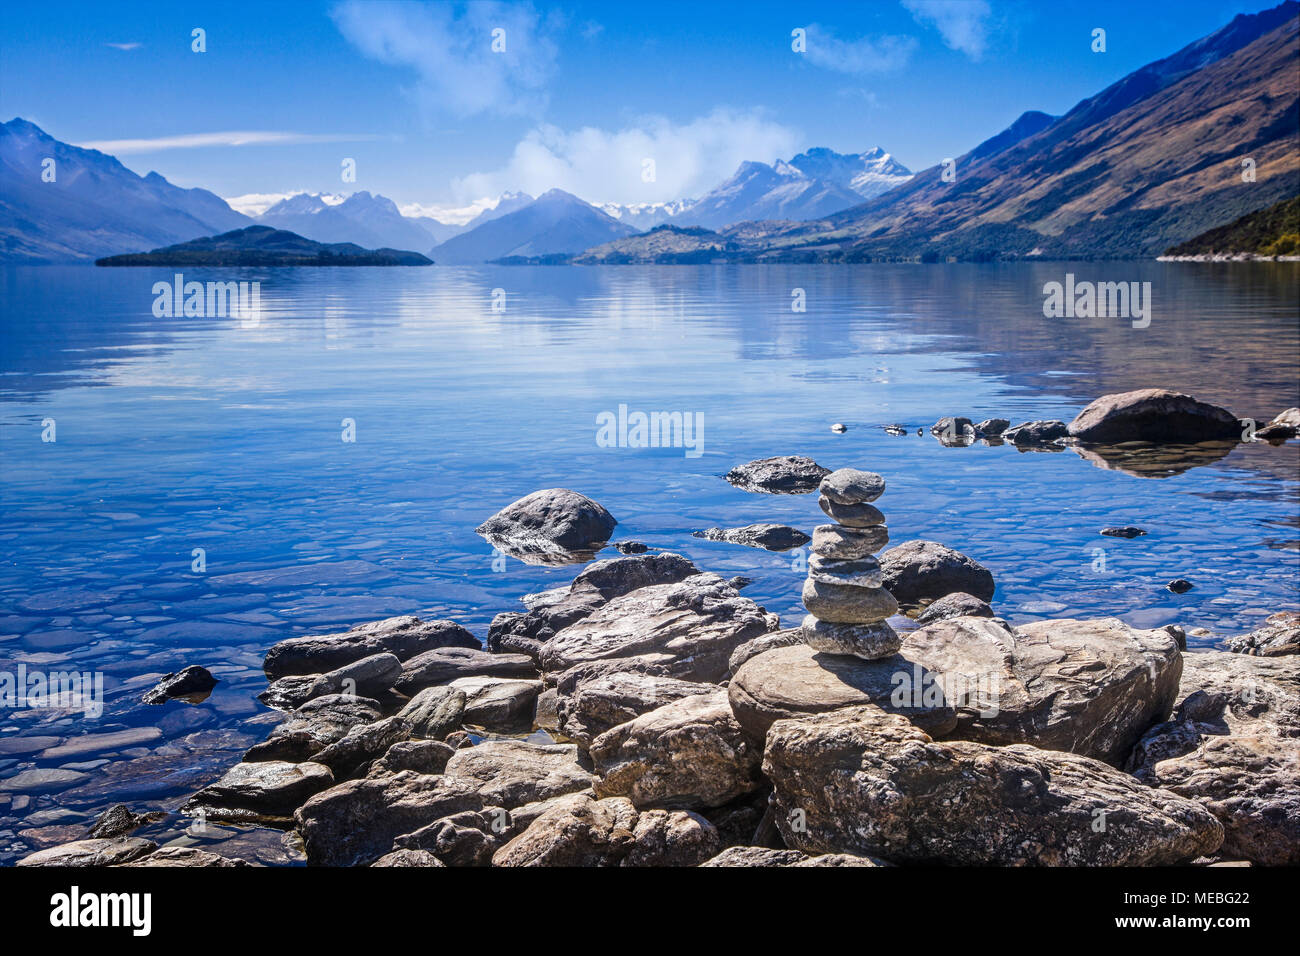 Lake Wakatipu führt zu Mt. Aspiring National Park, South Island, Neuseeland. Stockbild